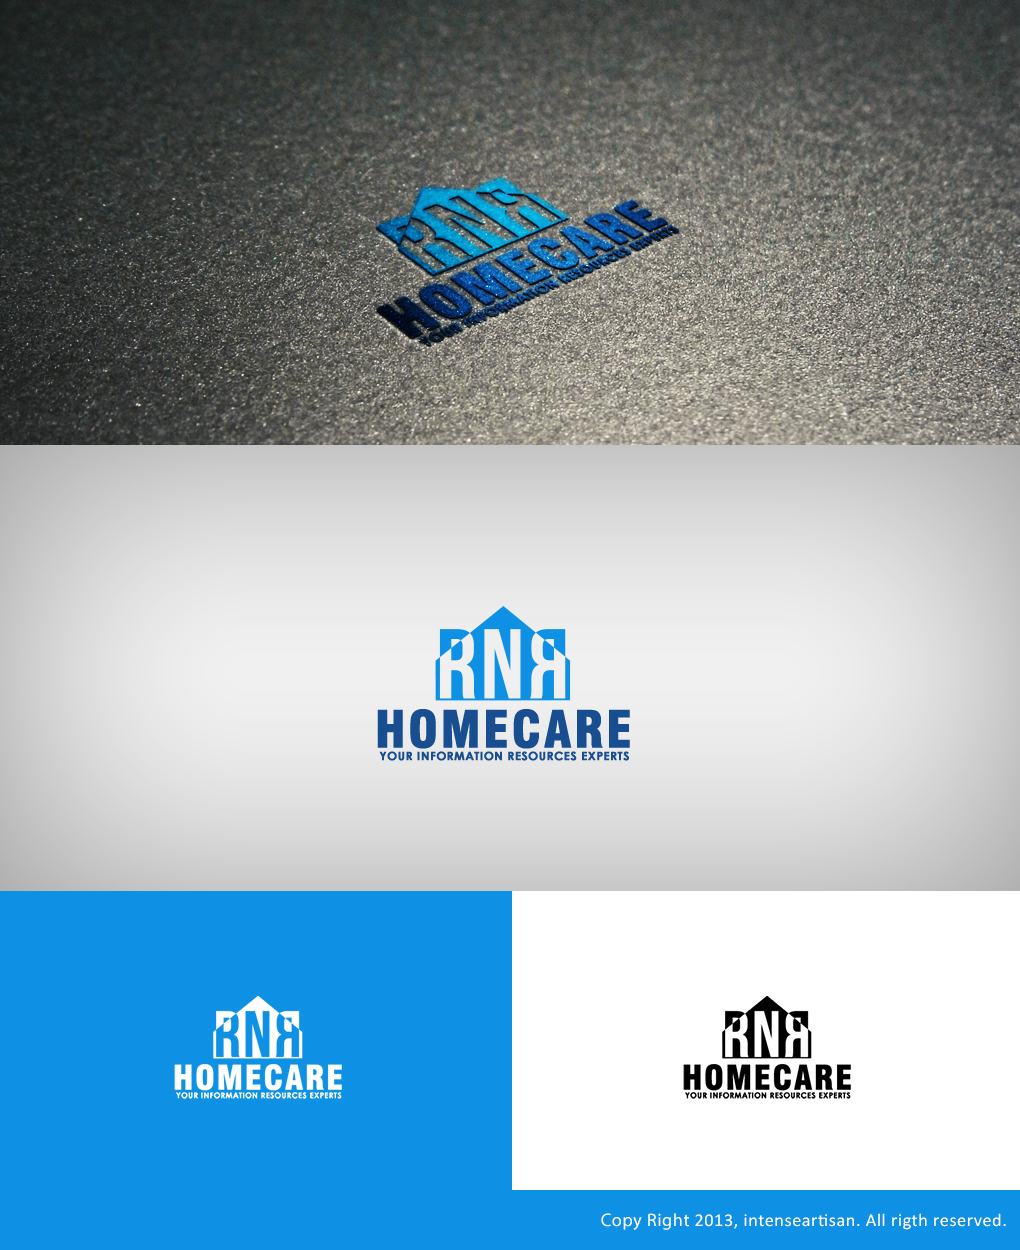 Logo Design by Virgilio Pineda III - Entry No. 124 in the Logo Design Contest Imaginative Logo Design for RNR HomeCare.